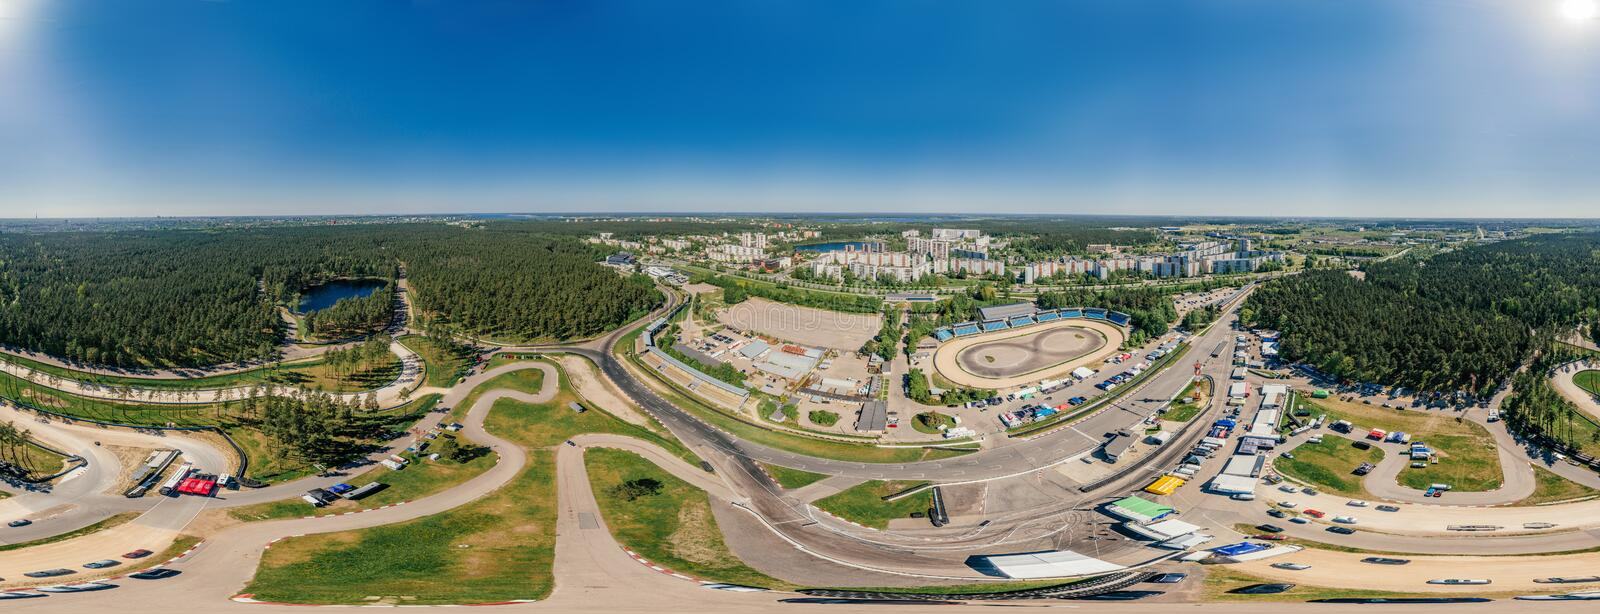 Bikirnieki Racing track in Riga city an Block of flats 360 VR Drone picture for Virtual reality, Street Panorama royalty free stock image